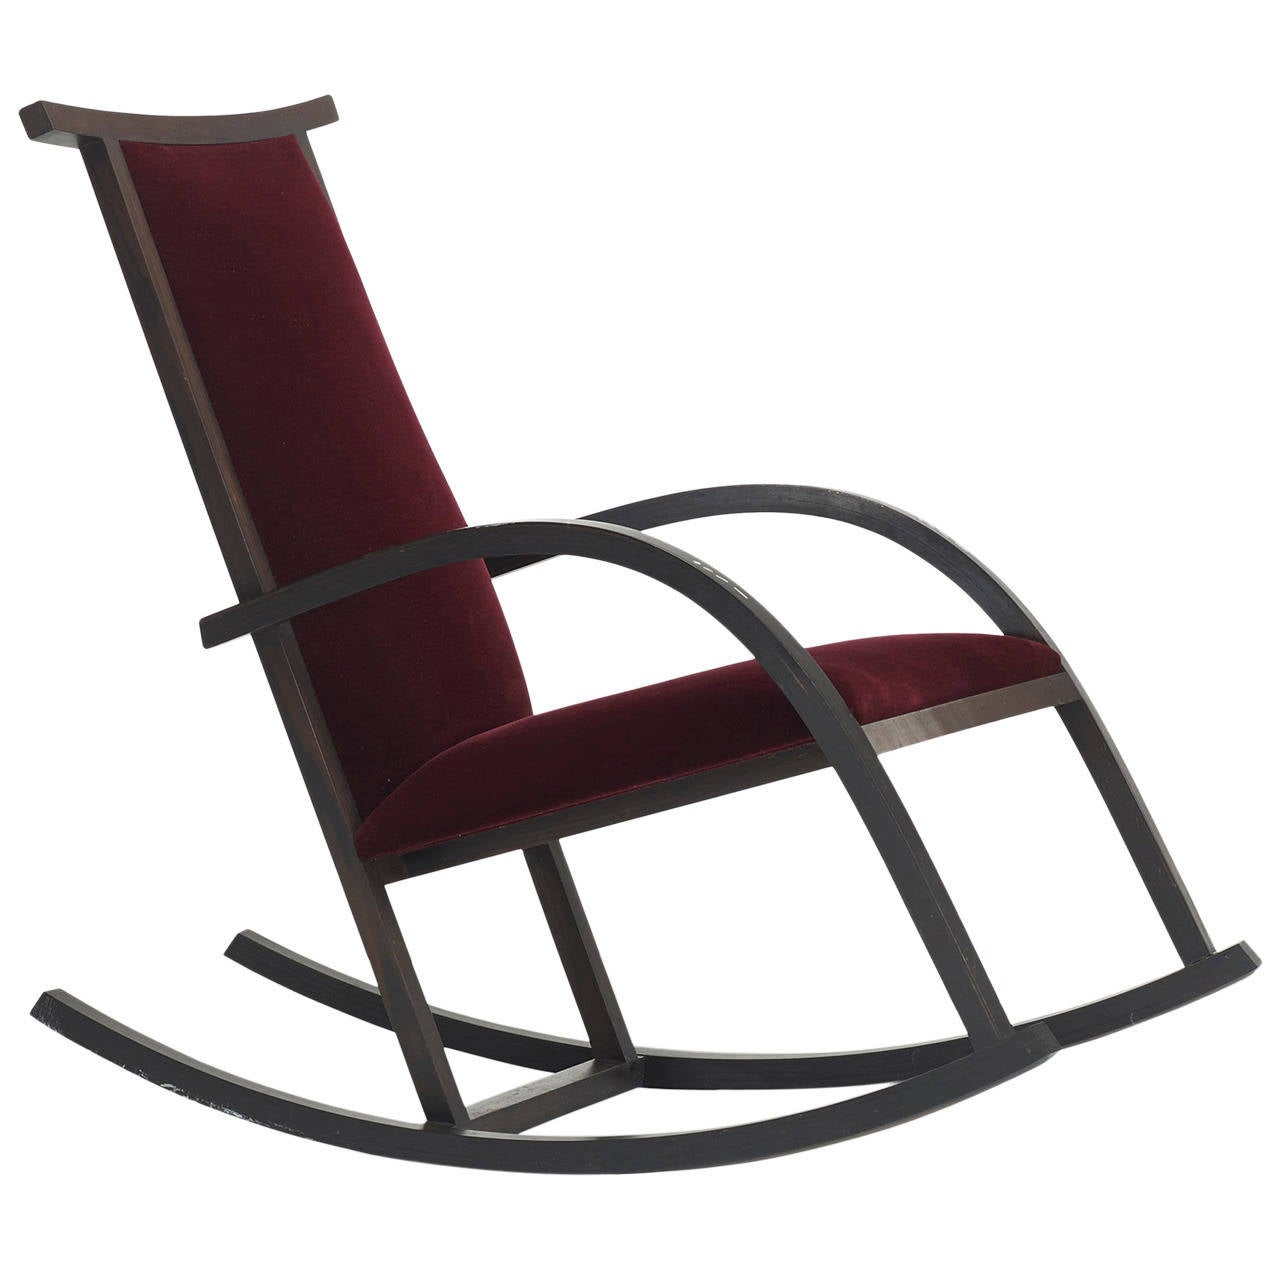 Riart rocker by carlos riart for knoll international for sale at 1stdibs - Knoll rocking chair ...